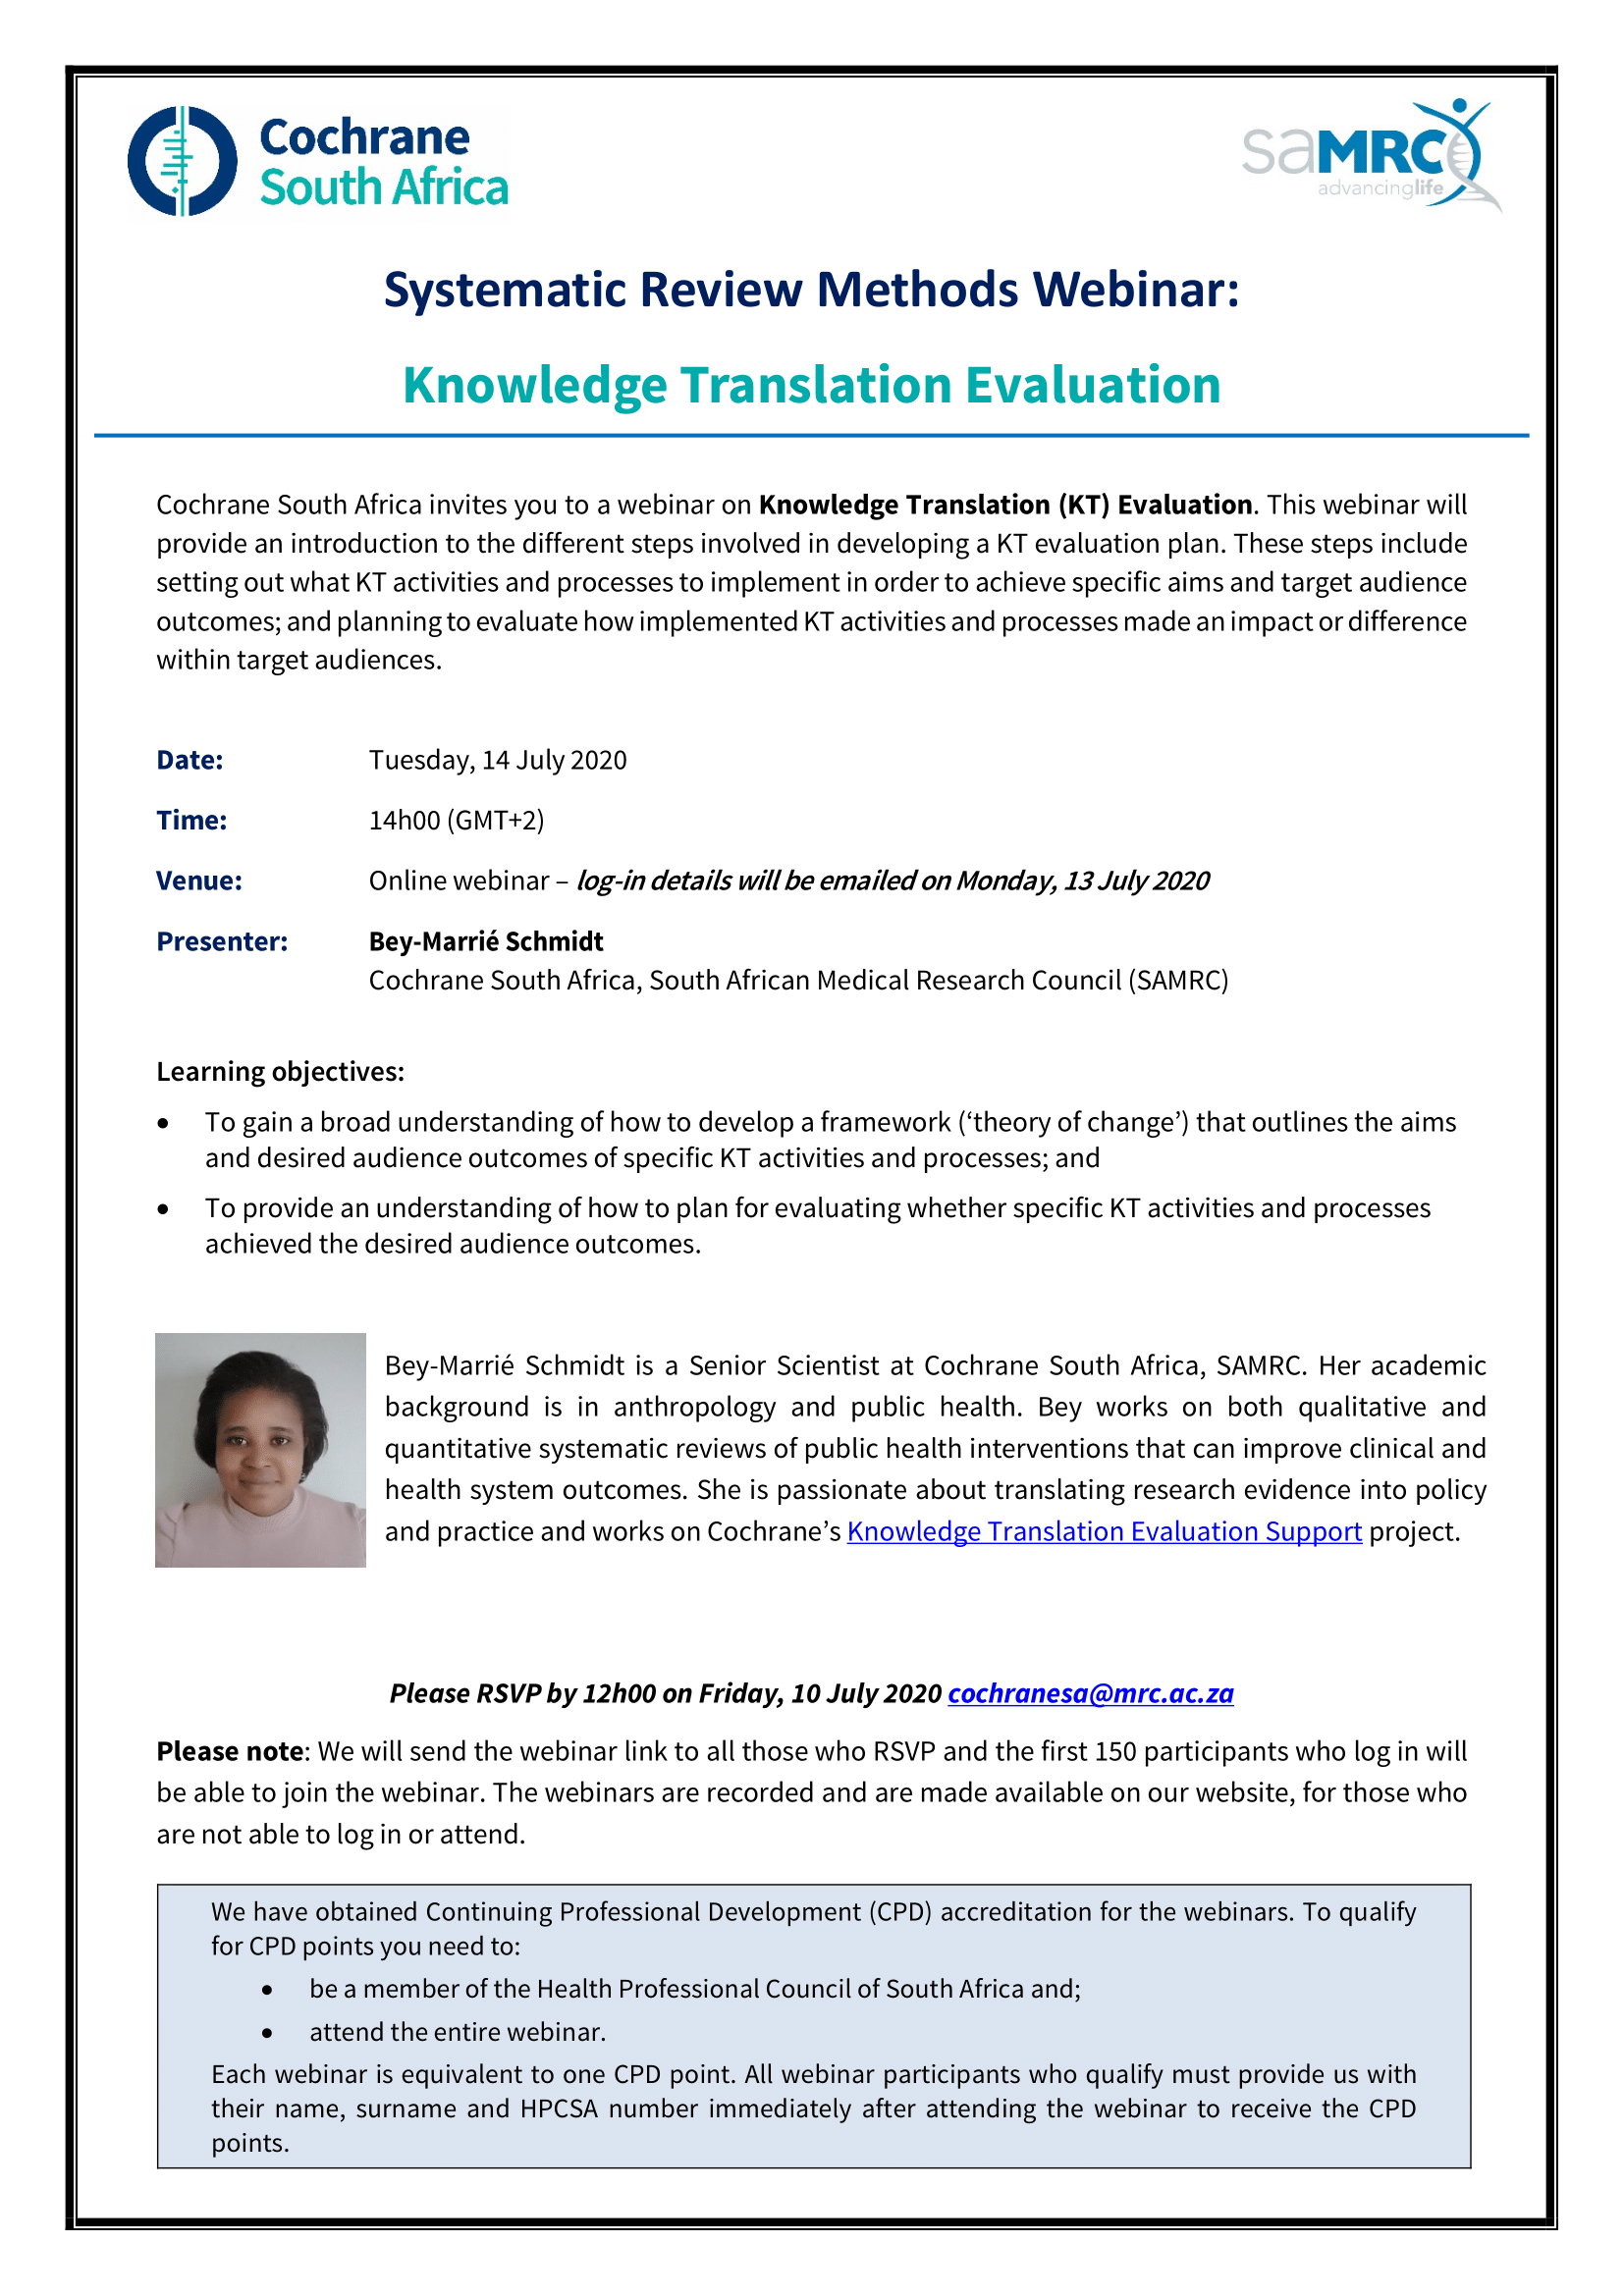 Systematic Review Methods Webinar: Knowledge Translation Evaluation